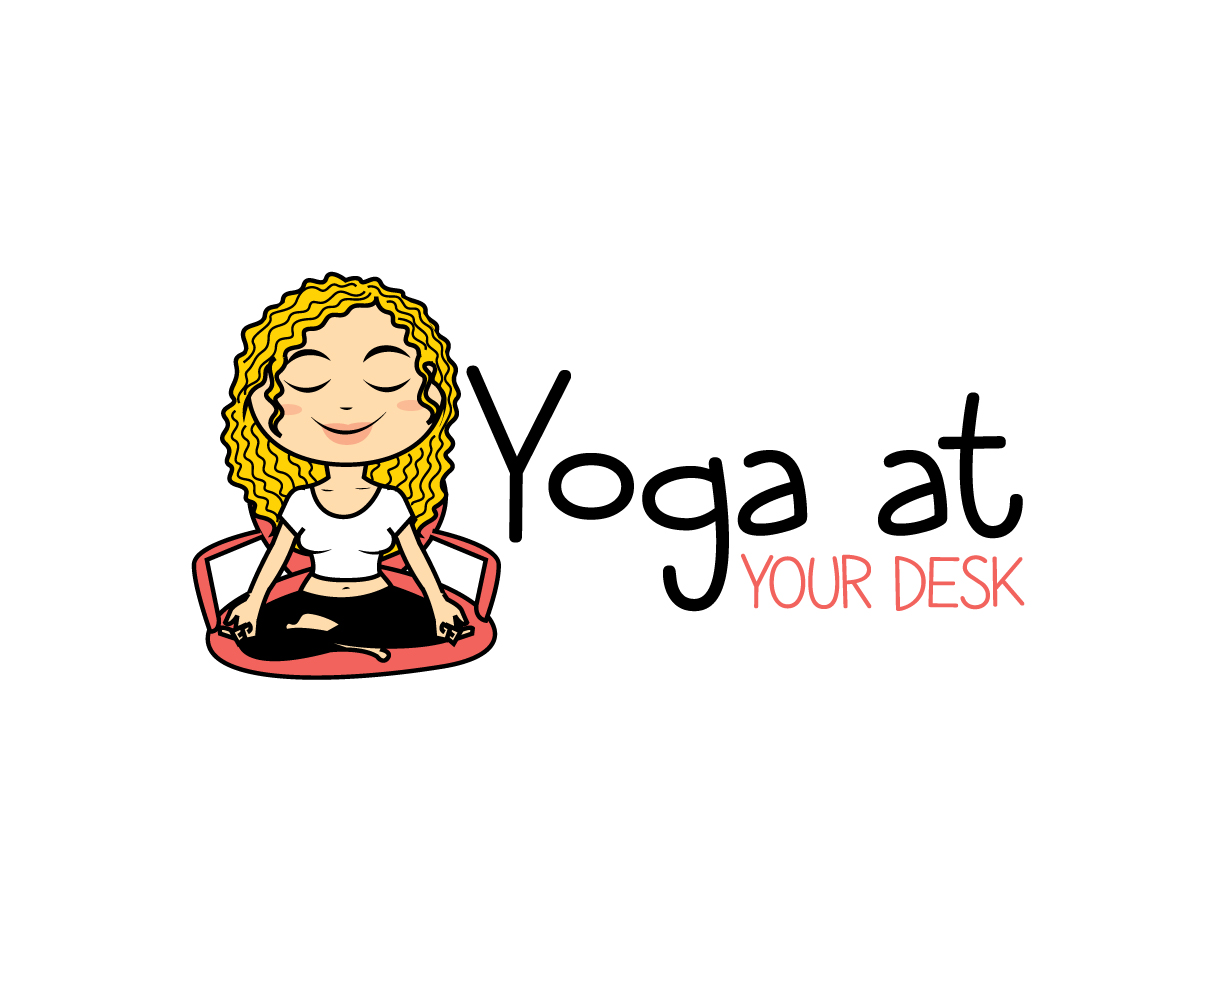 Logo Design For Yoga At Your Desk By Graphicsexpert Design 19130084